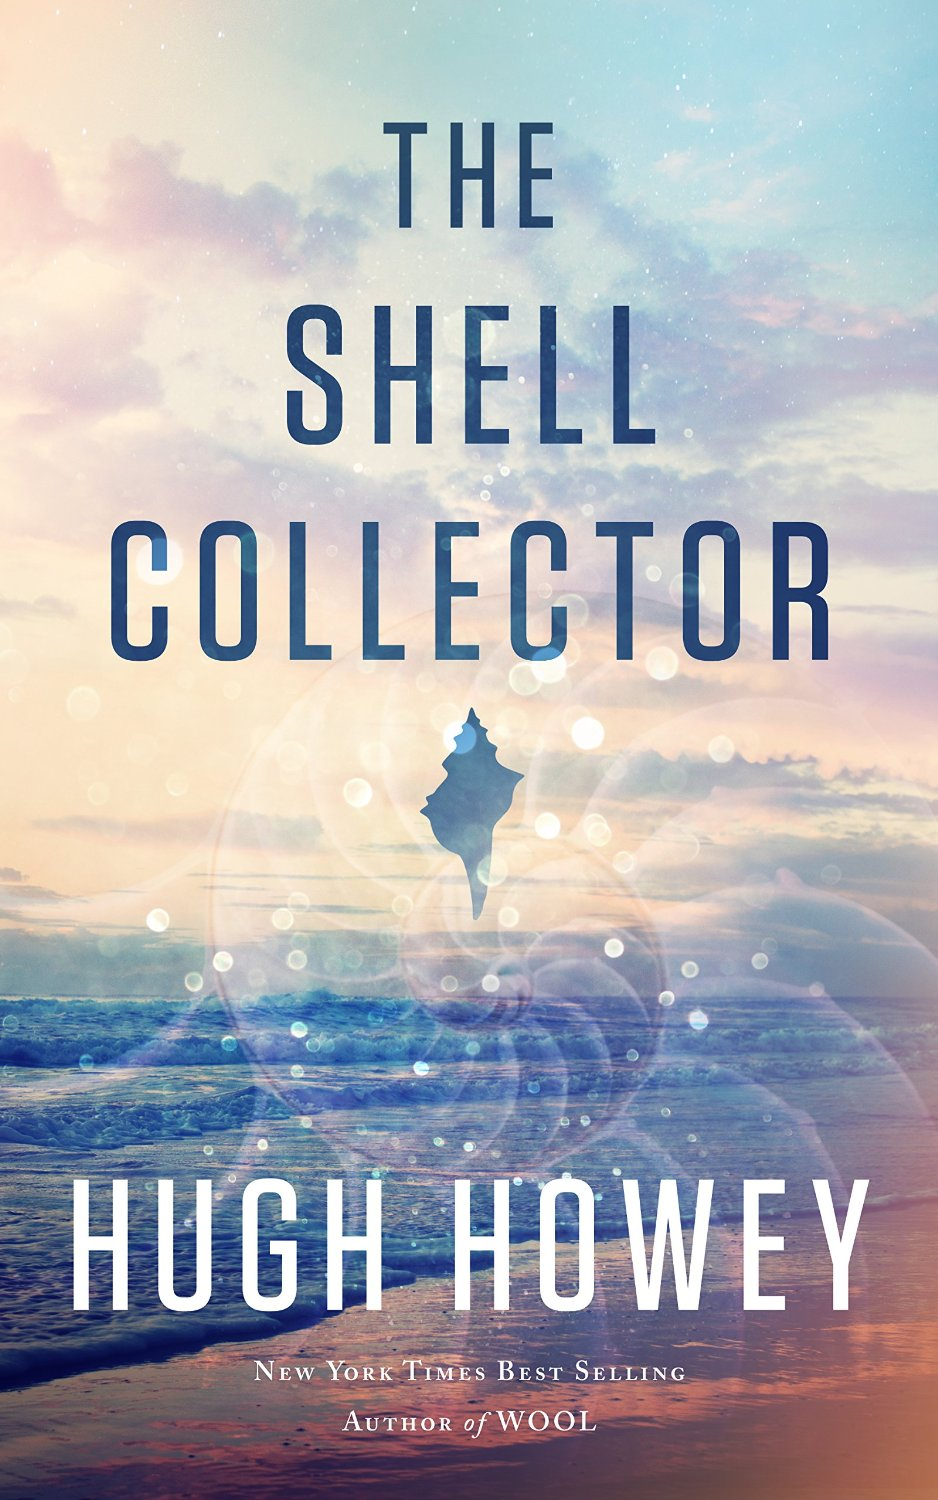 The Shell Collector by Hugh Howey